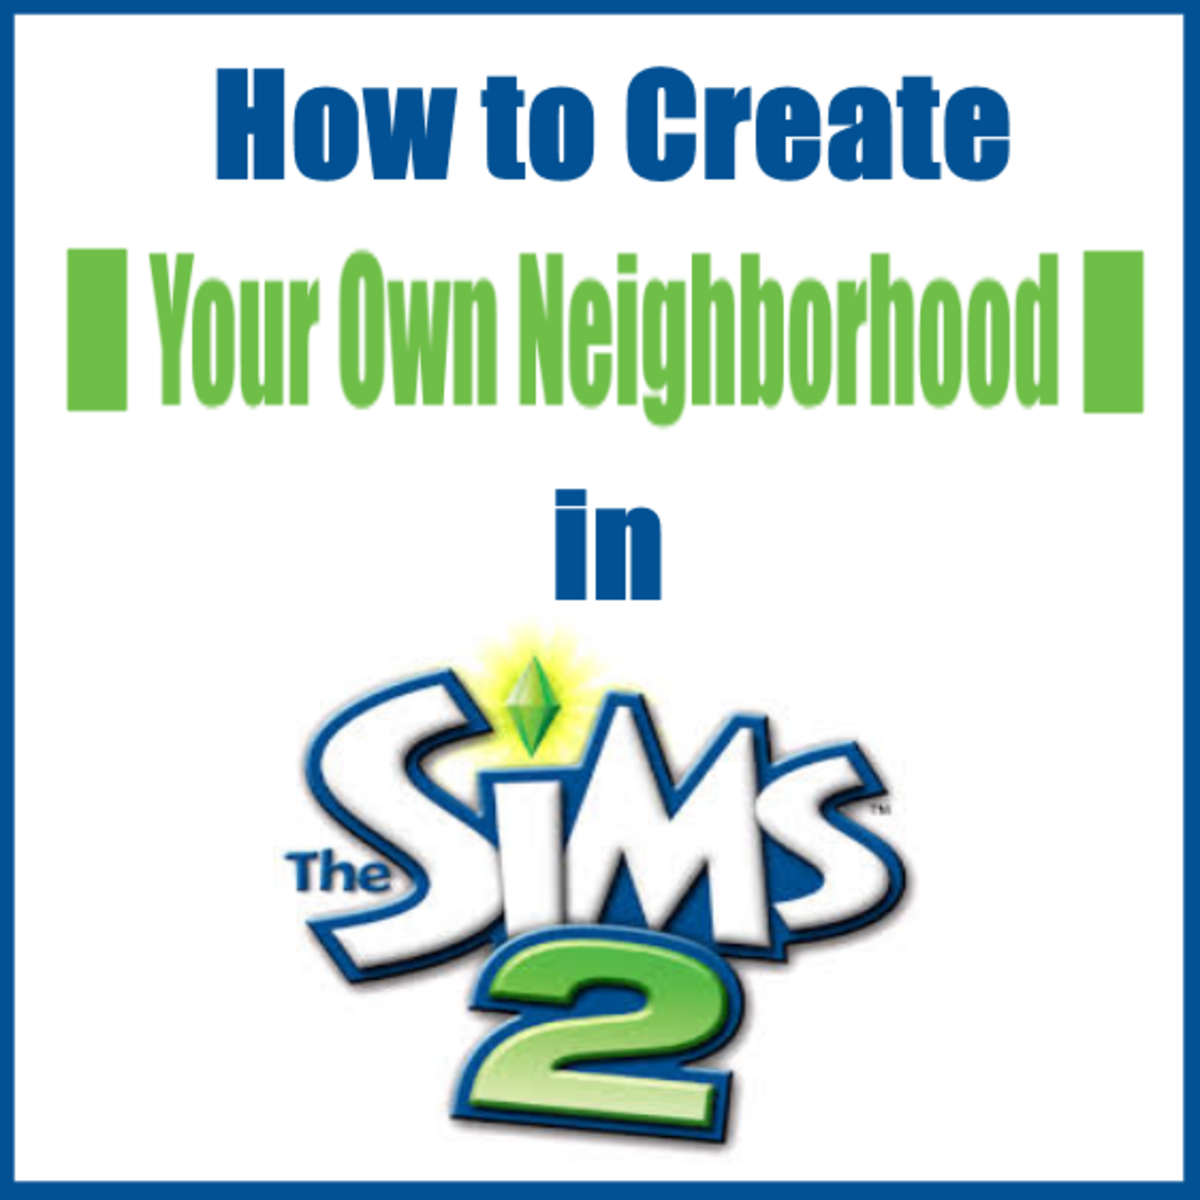 How to Make Your Own Neighborhood in